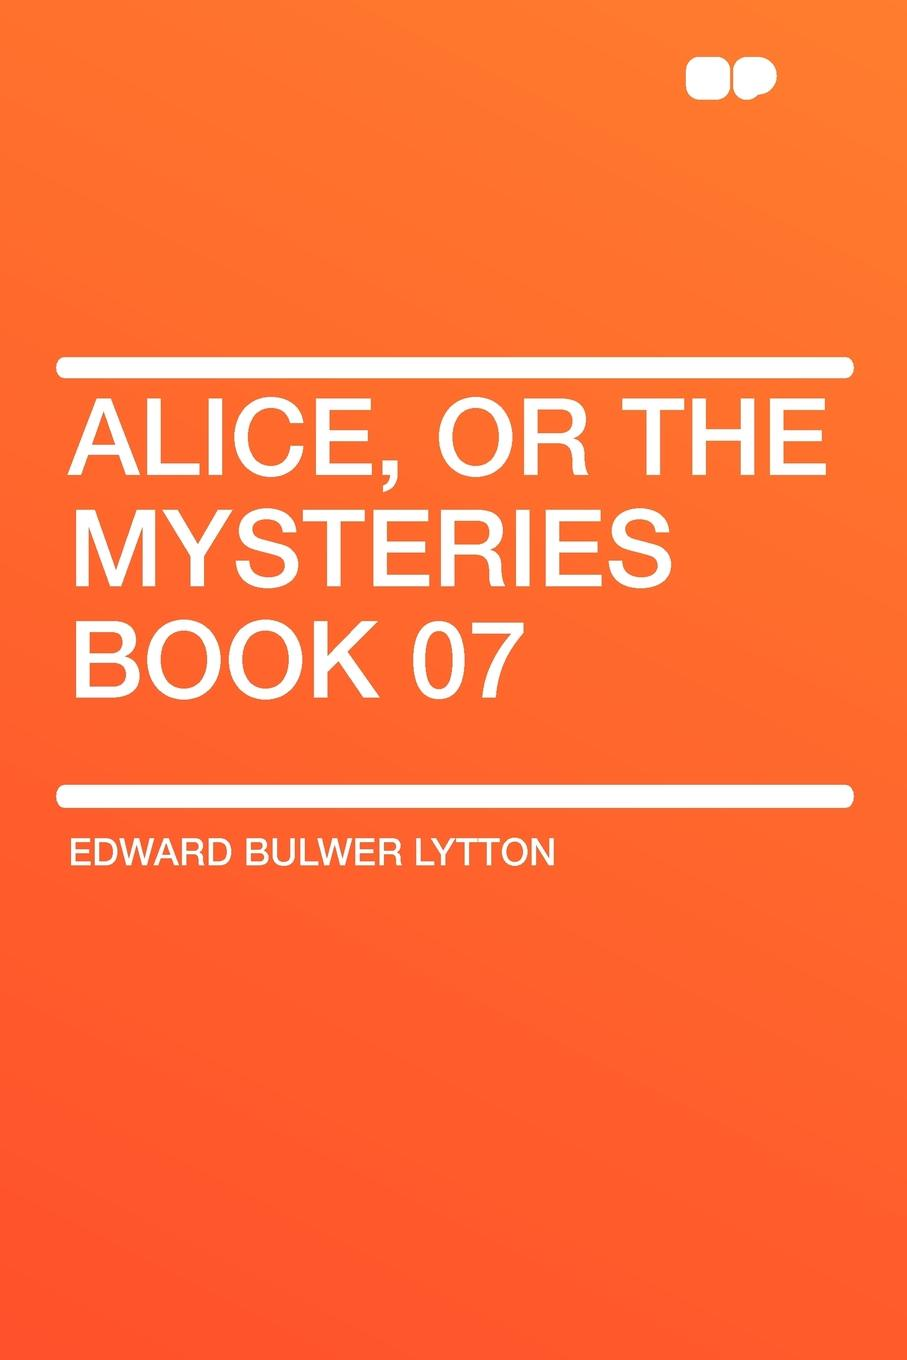 Edward Bulwer Lytton Alice, or the Mysteries Book 07 edward bulwer lytton alice or the mysteries